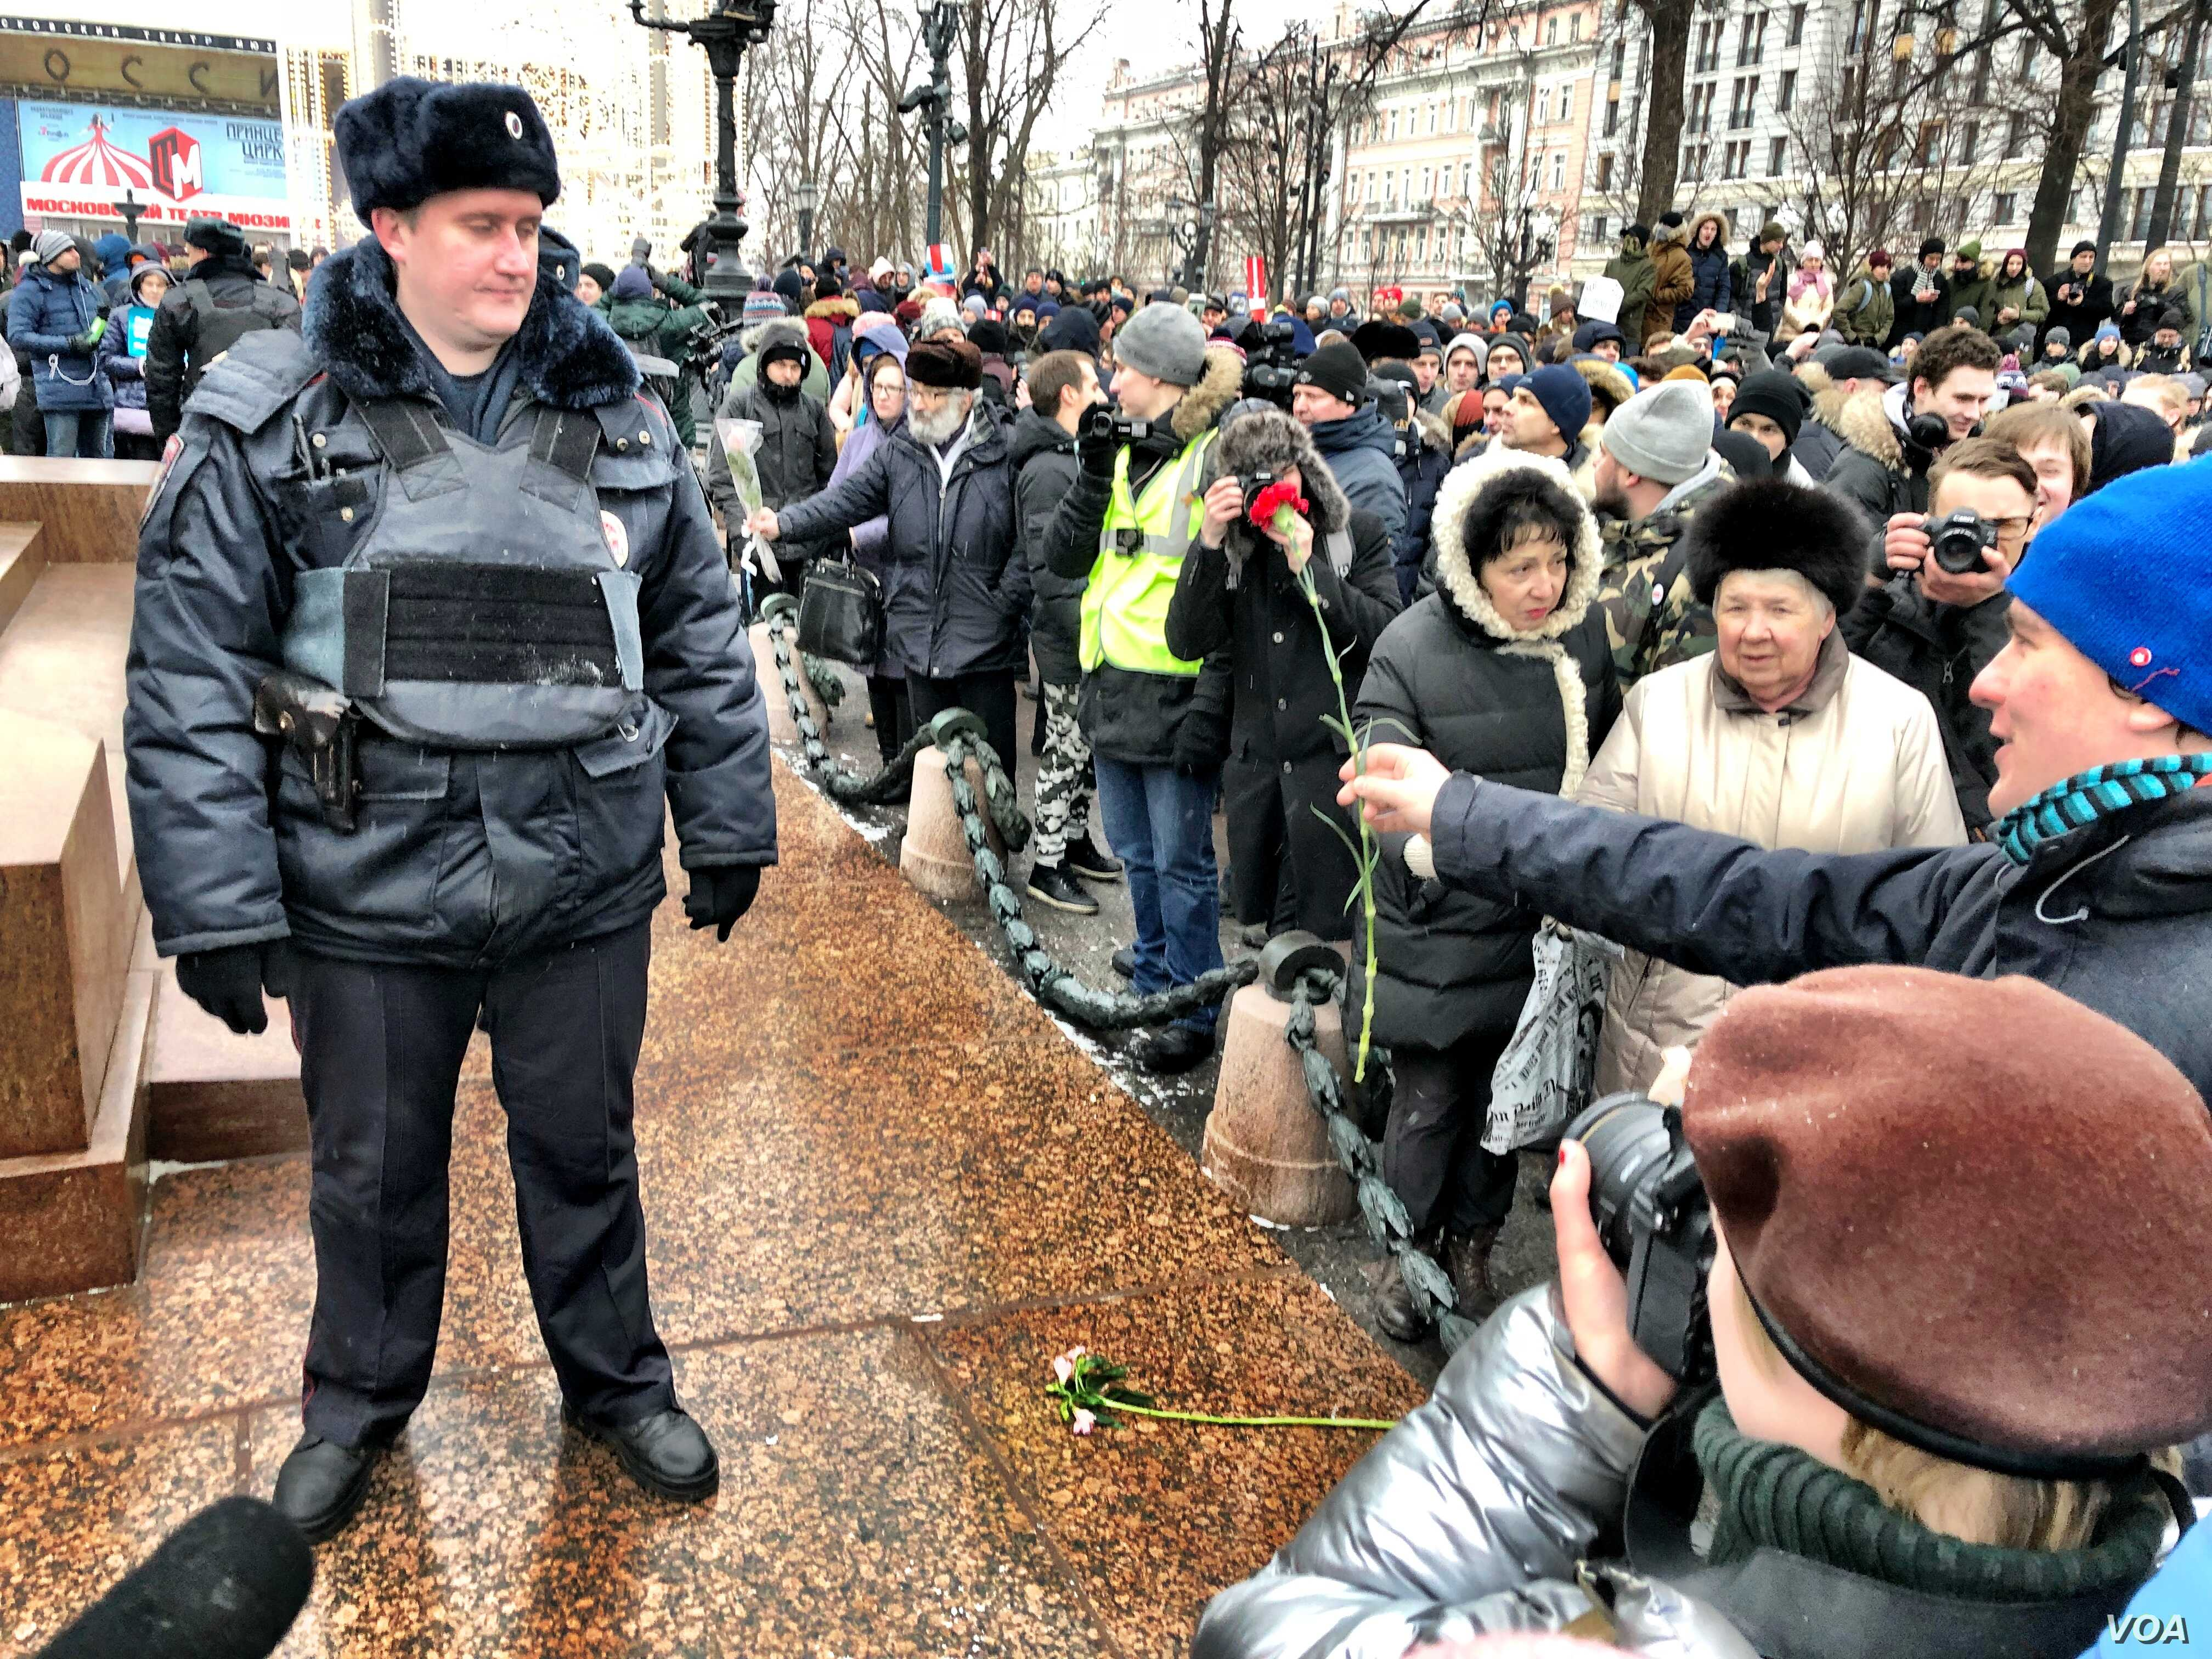 A protester in Moscow's Pushkin Square makes a peace offering to police.  Independent monitoring groups put arrests at 340 nationwide. (Photo: Charles Maynes for VOA)